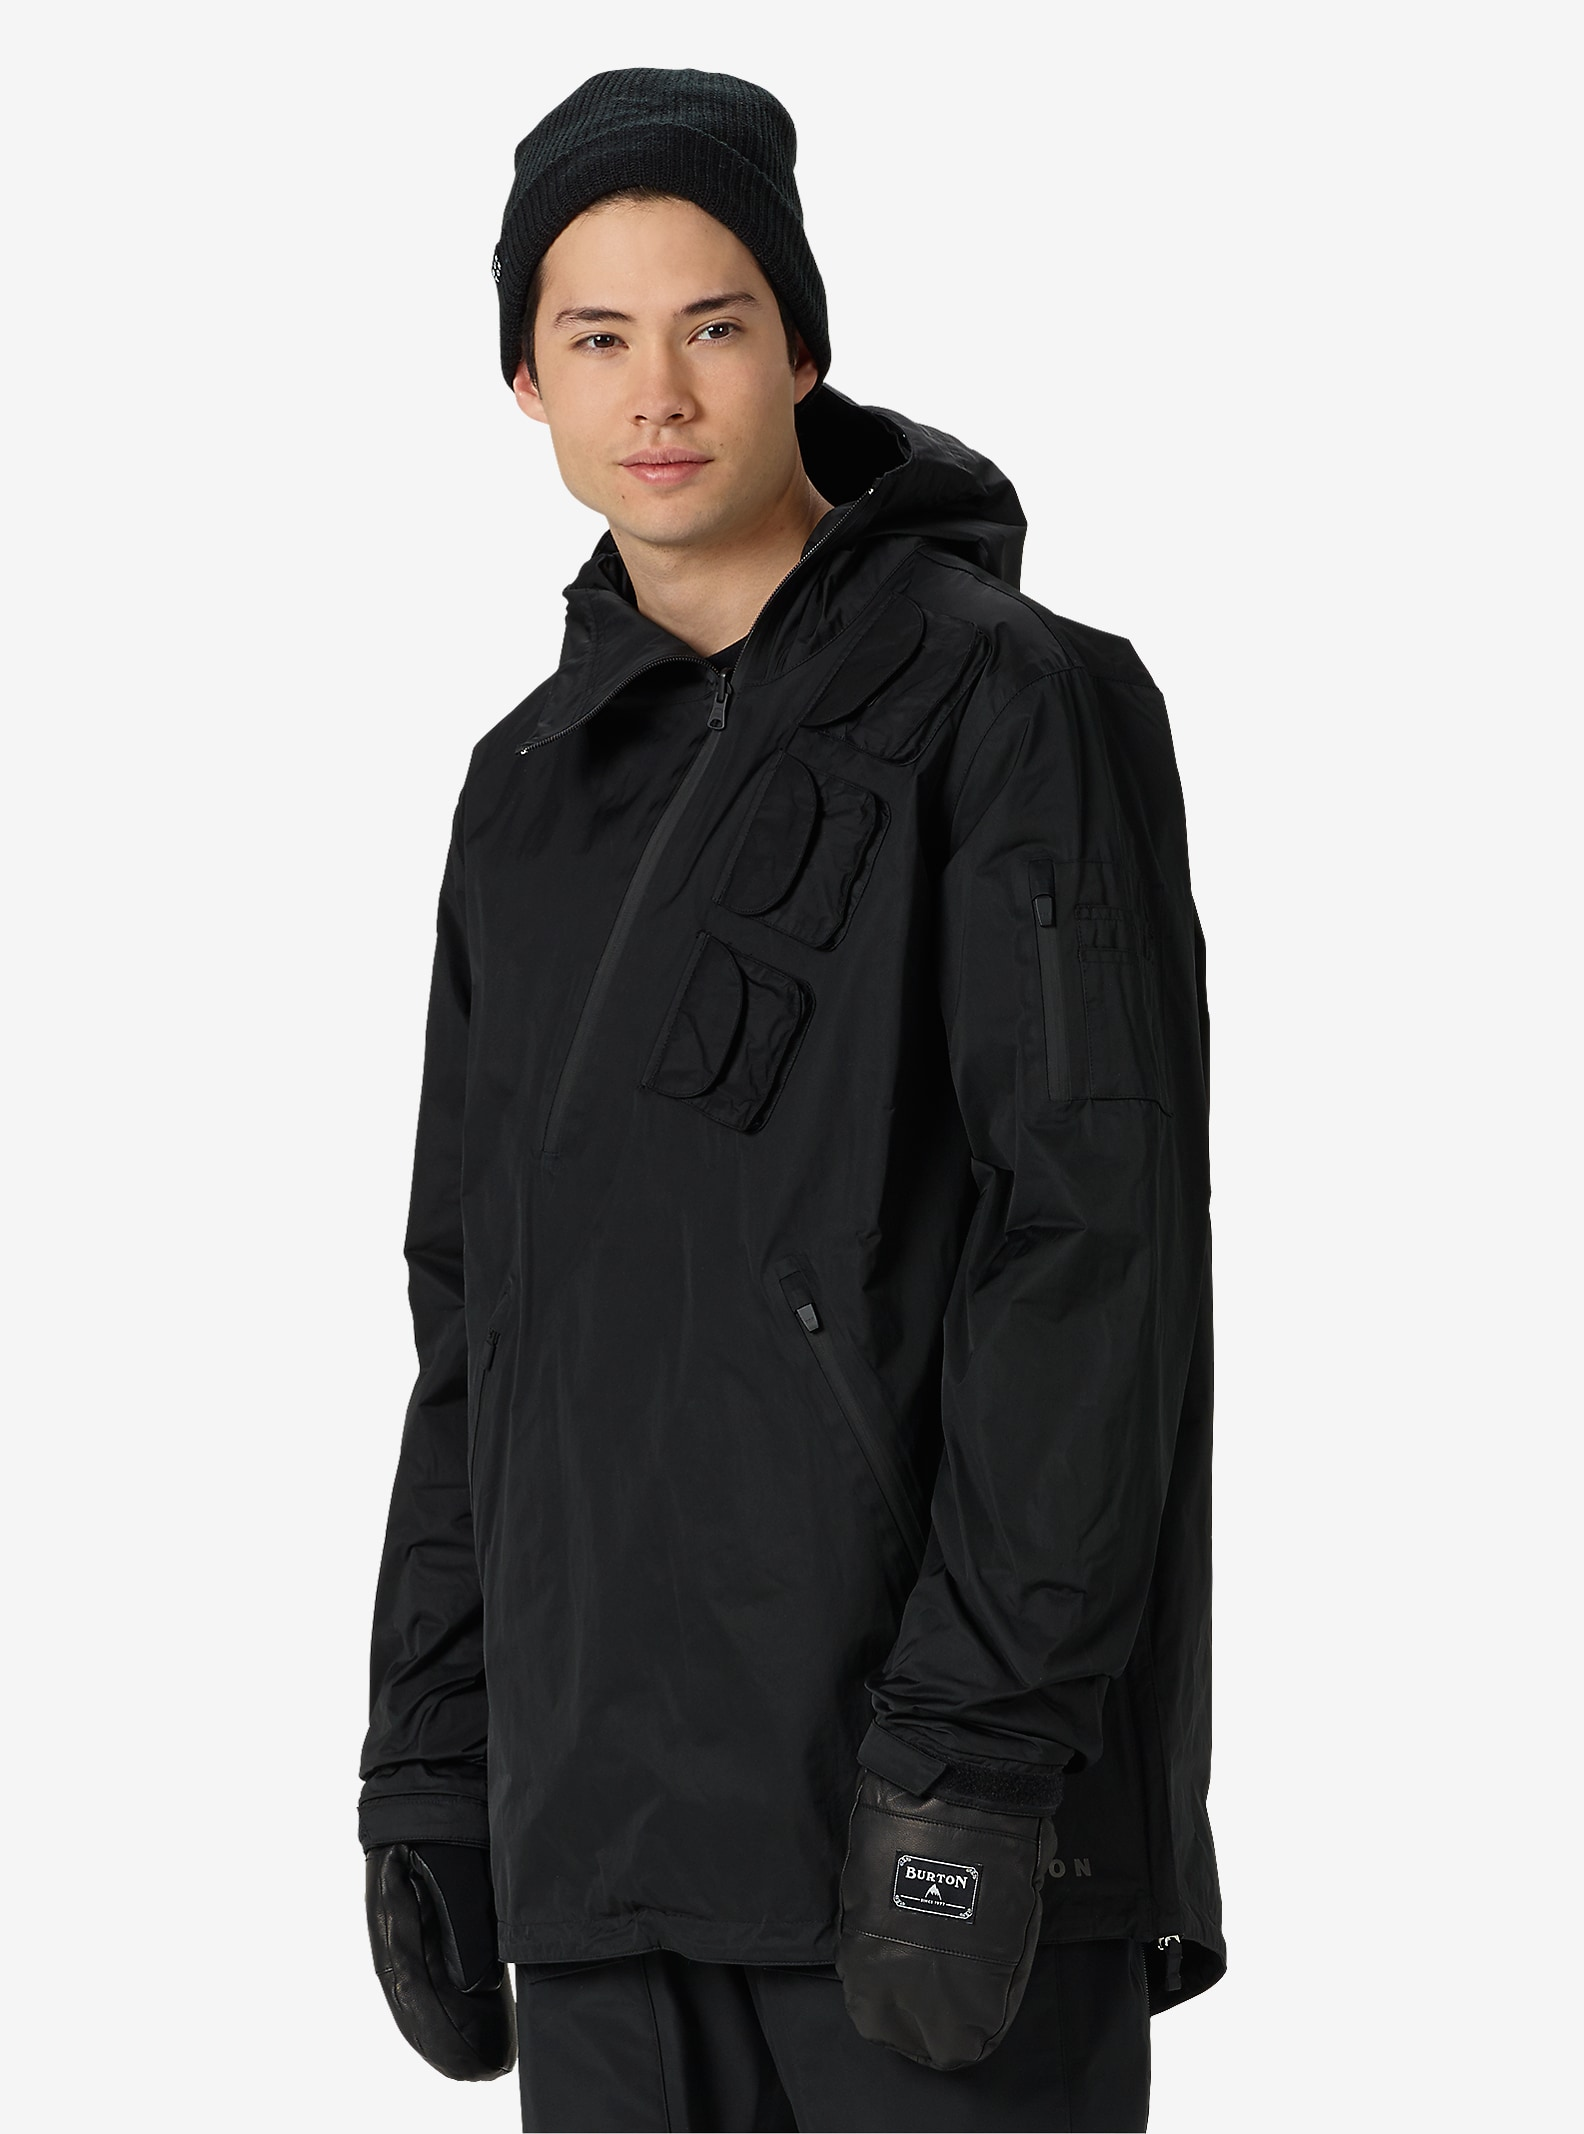 Black Scale x Burton Raid Reversible Anorak Jacket shown in Black Scale Black / Big Tiger